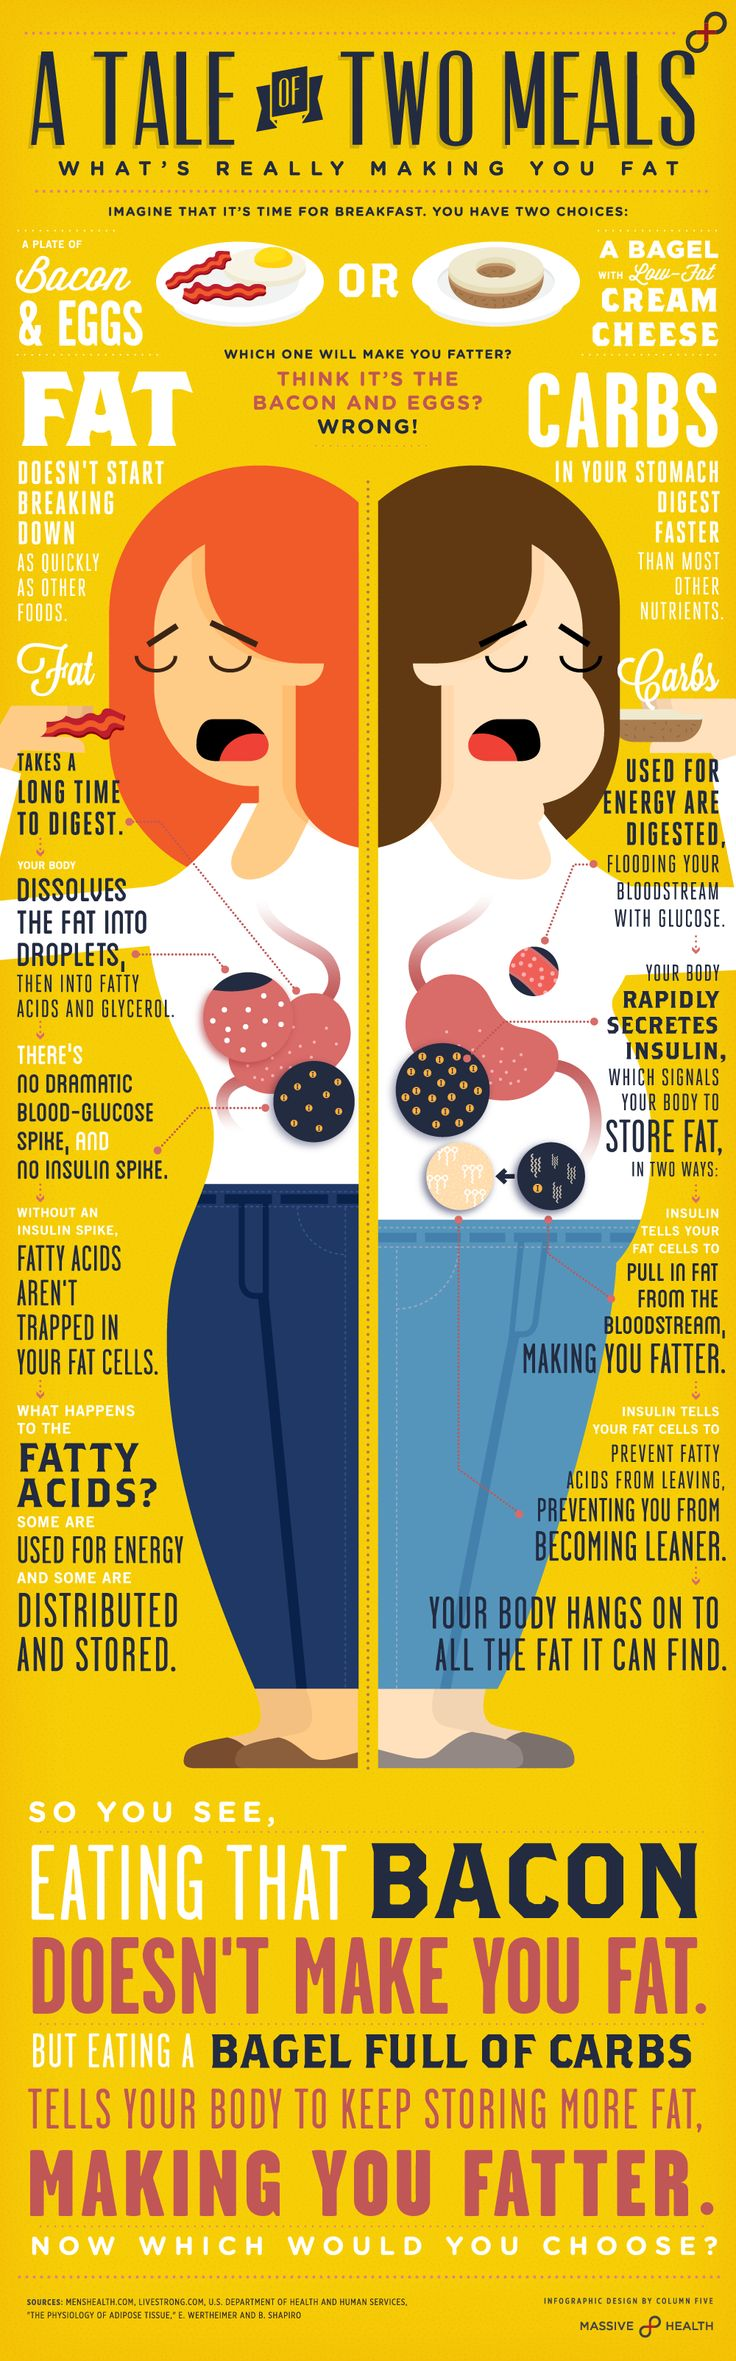 Massive Health - A Tale of Two Meals [infographic]: Low Carb, Meals, Diet, Food, Cream Cheese, Fat, Healthy, Infographic